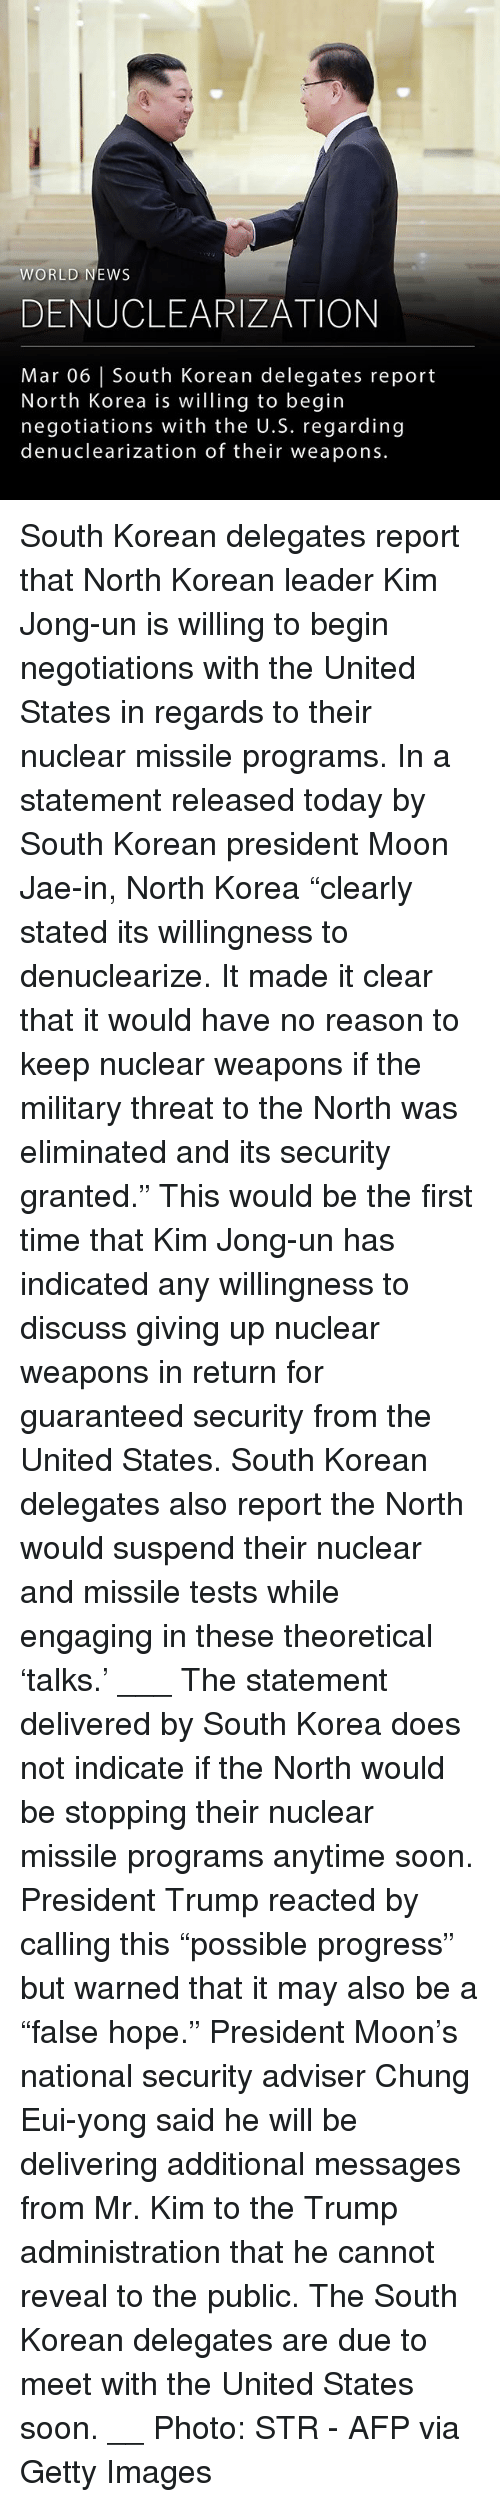 "Nuclear Weapons: WORLD NEWS  DENUCLEARIZATION  Mar 06 | South Korean delegates report  North Korea is willing to begin  negotiations with the U.S. regarding  denuclearization of their weapons. South Korean delegates report that North Korean leader Kim Jong-un is willing to begin negotiations with the United States in regards to their nuclear missile programs. In a statement released today by South Korean president Moon Jae-in, North Korea ""clearly stated its willingness to denuclearize. It made it clear that it would have no reason to keep nuclear weapons if the military threat to the North was eliminated and its security granted."" This would be the first time that Kim Jong-un has indicated any willingness to discuss giving up nuclear weapons in return for guaranteed security from the United States. South Korean delegates also report the North would suspend their nuclear and missile tests while engaging in these theoretical 'talks.' ___ The statement delivered by South Korea does not indicate if the North would be stopping their nuclear missile programs anytime soon. President Trump reacted by calling this ""possible progress"" but warned that it may also be a ""false hope."" President Moon's national security adviser Chung Eui-yong said he will be delivering additional messages from Mr. Kim to the Trump administration that he cannot reveal to the public. The South Korean delegates are due to meet with the United States soon. __ Photo: STR - AFP via Getty Images"